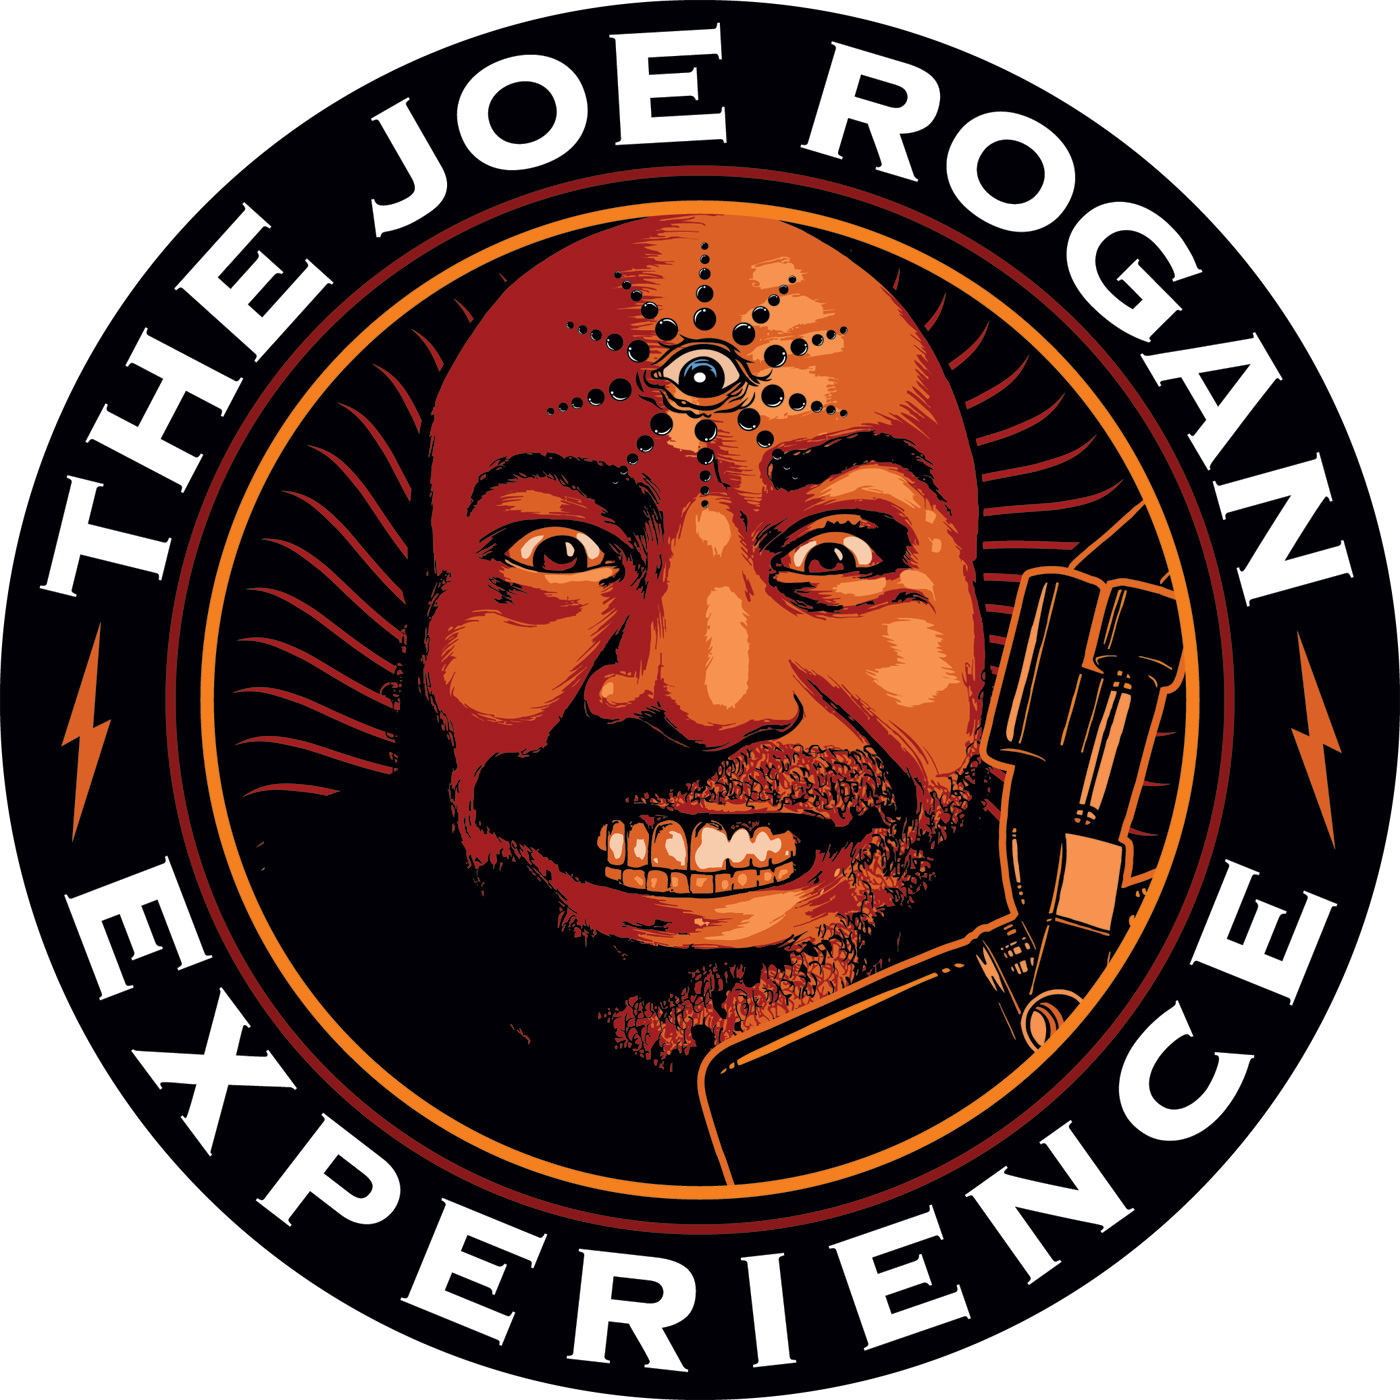 The Joe Rogan Experience PODCAST #145 - Bert Kreischer, Brian Redban